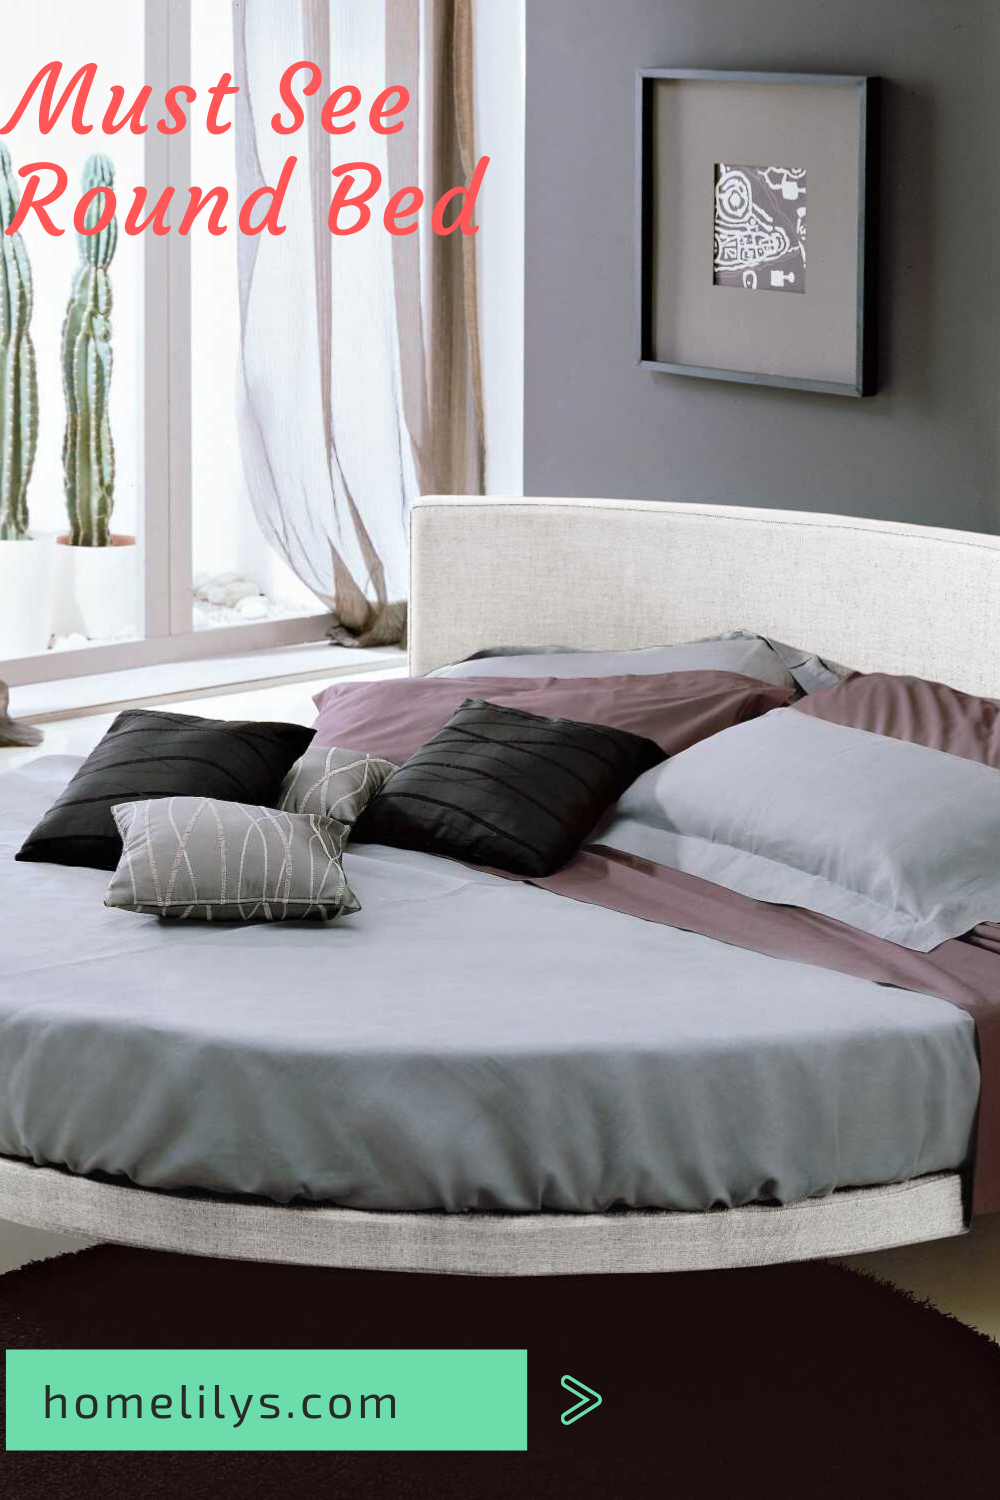 14 Modern Round Beds For Your Home In 2020 You Can Buy Now In 2020 Round Beds Home Decor Living Room Designs